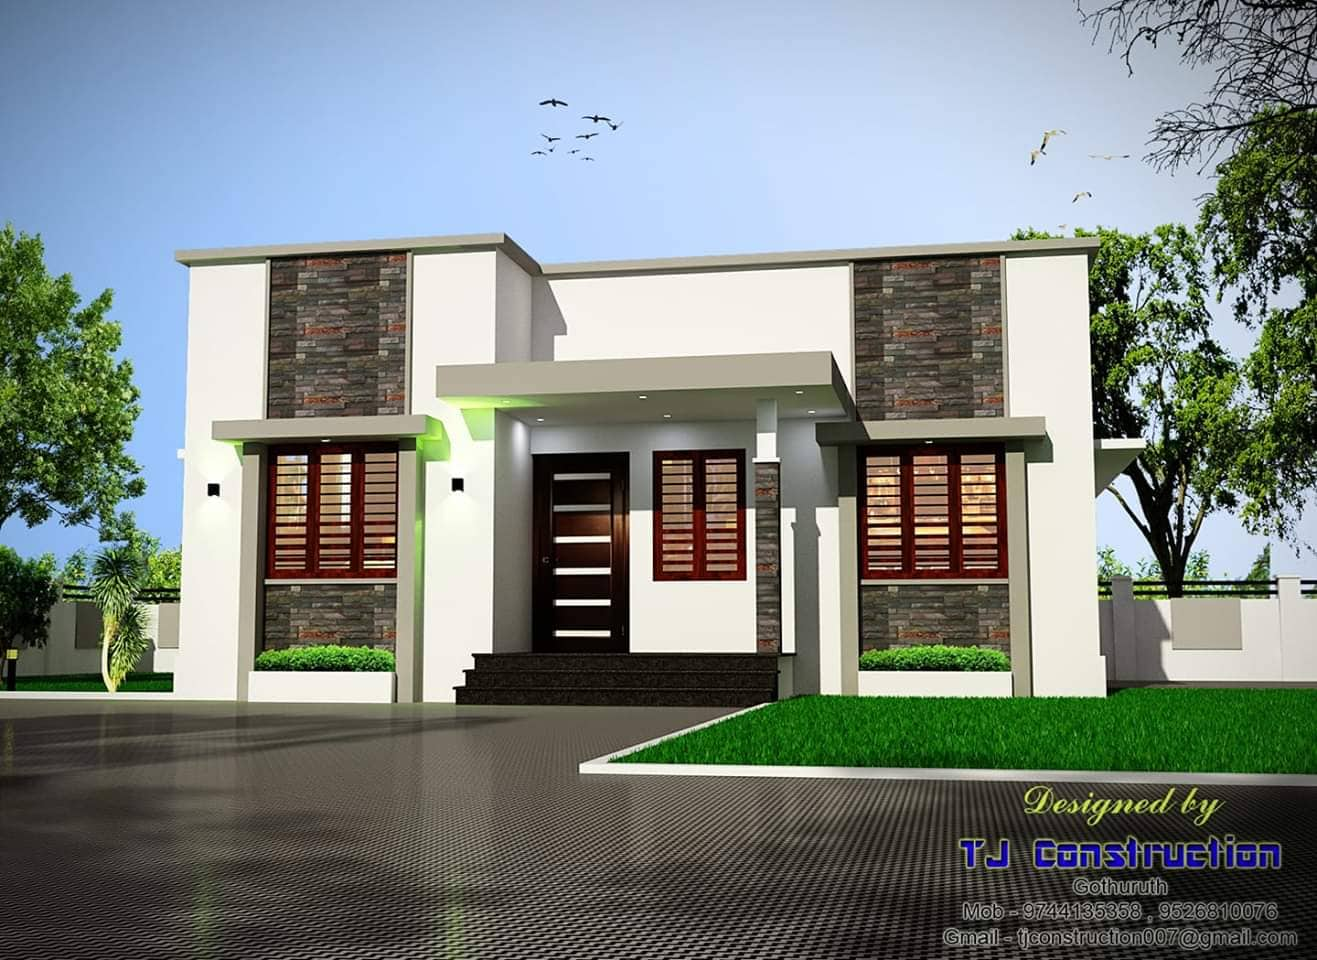 Photo of 640 Square Feet 2 Bedroom Contemporary Style Single Floor Modern Budget Home Design